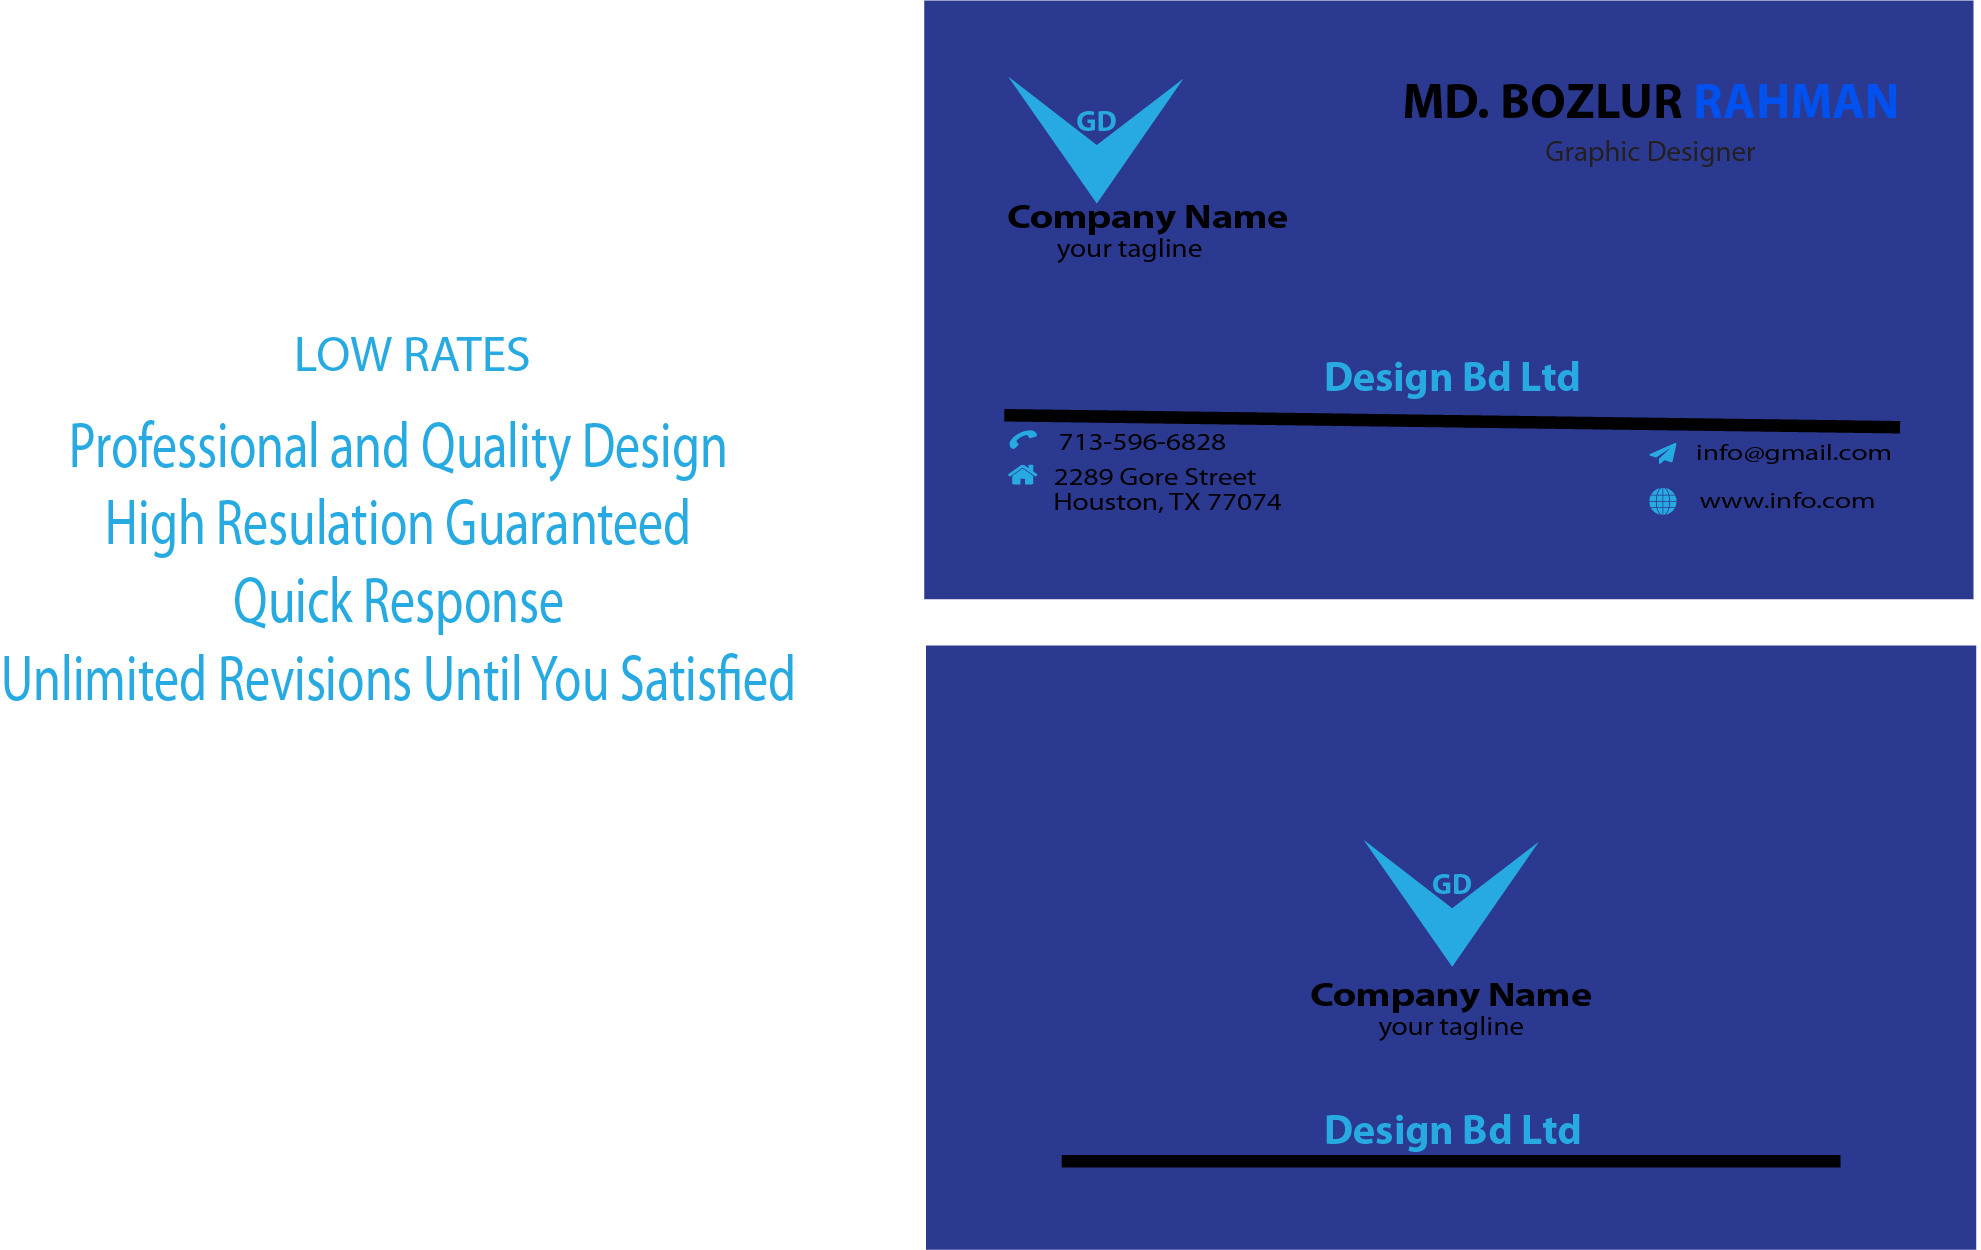 I Will Make Professional Business Card Design of Your Priority